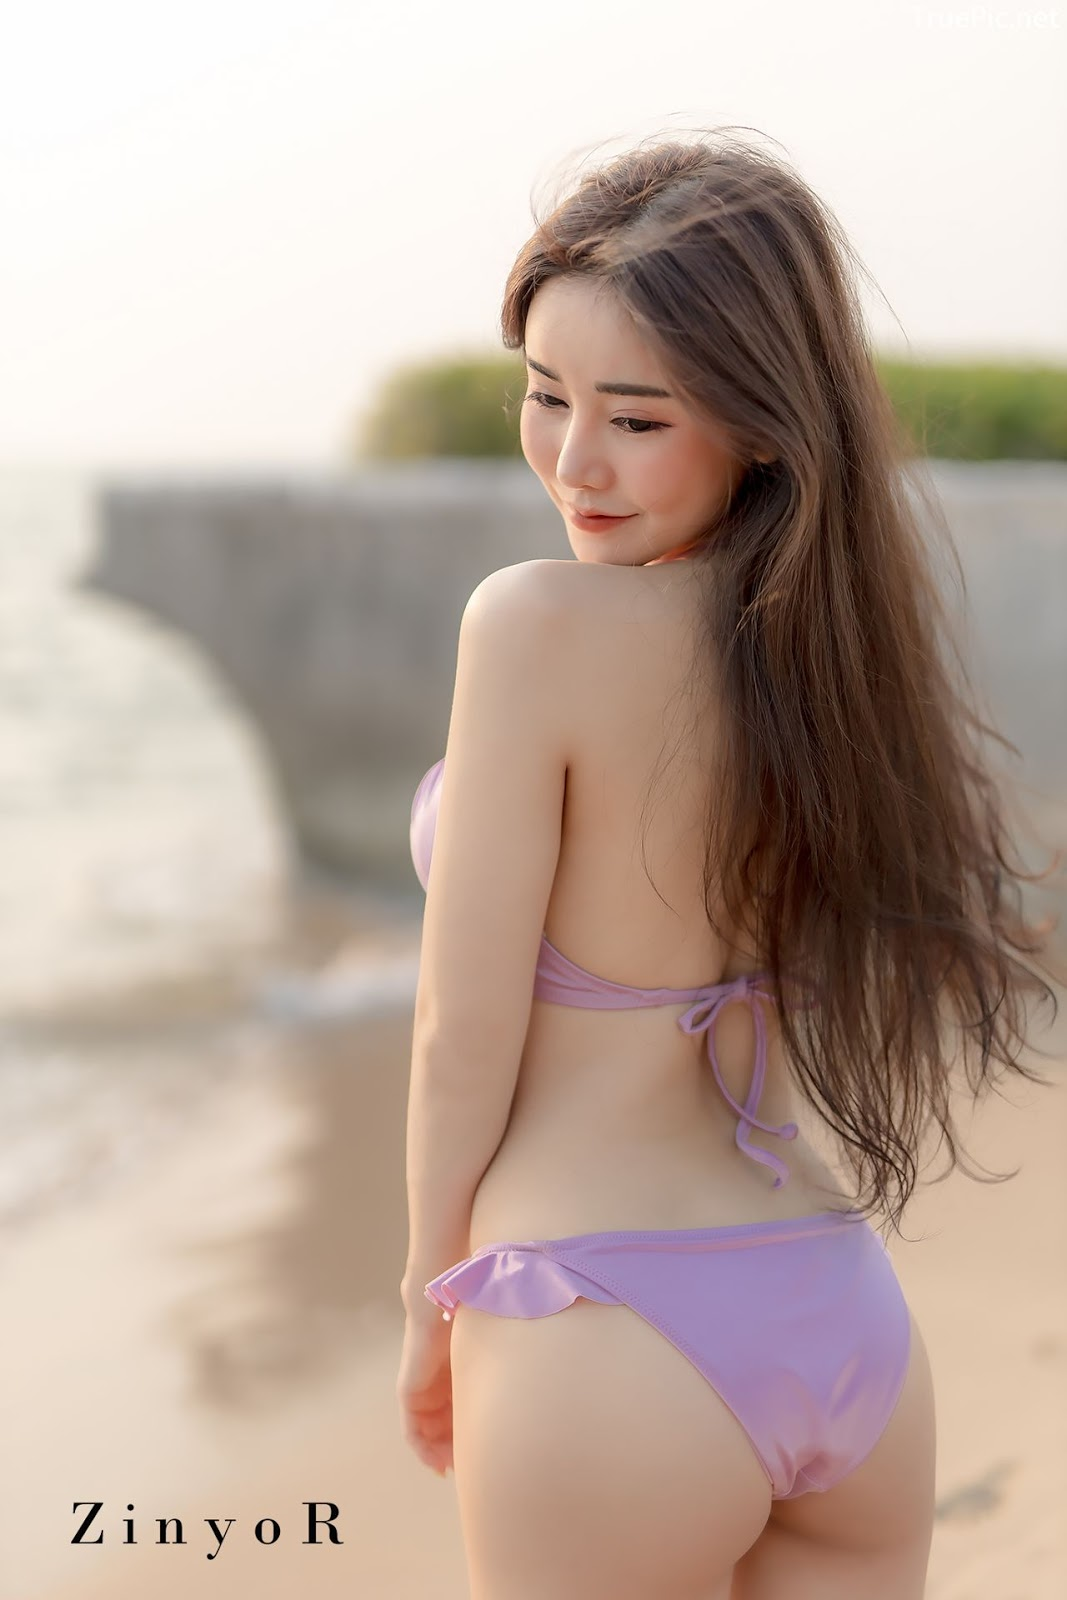 Image-Thailand-Sexy-Model-Blue-Jirarat-จิรารัตน์-ชานันโท-Blue-On-The-Beach-TruePic.net- Picture-8